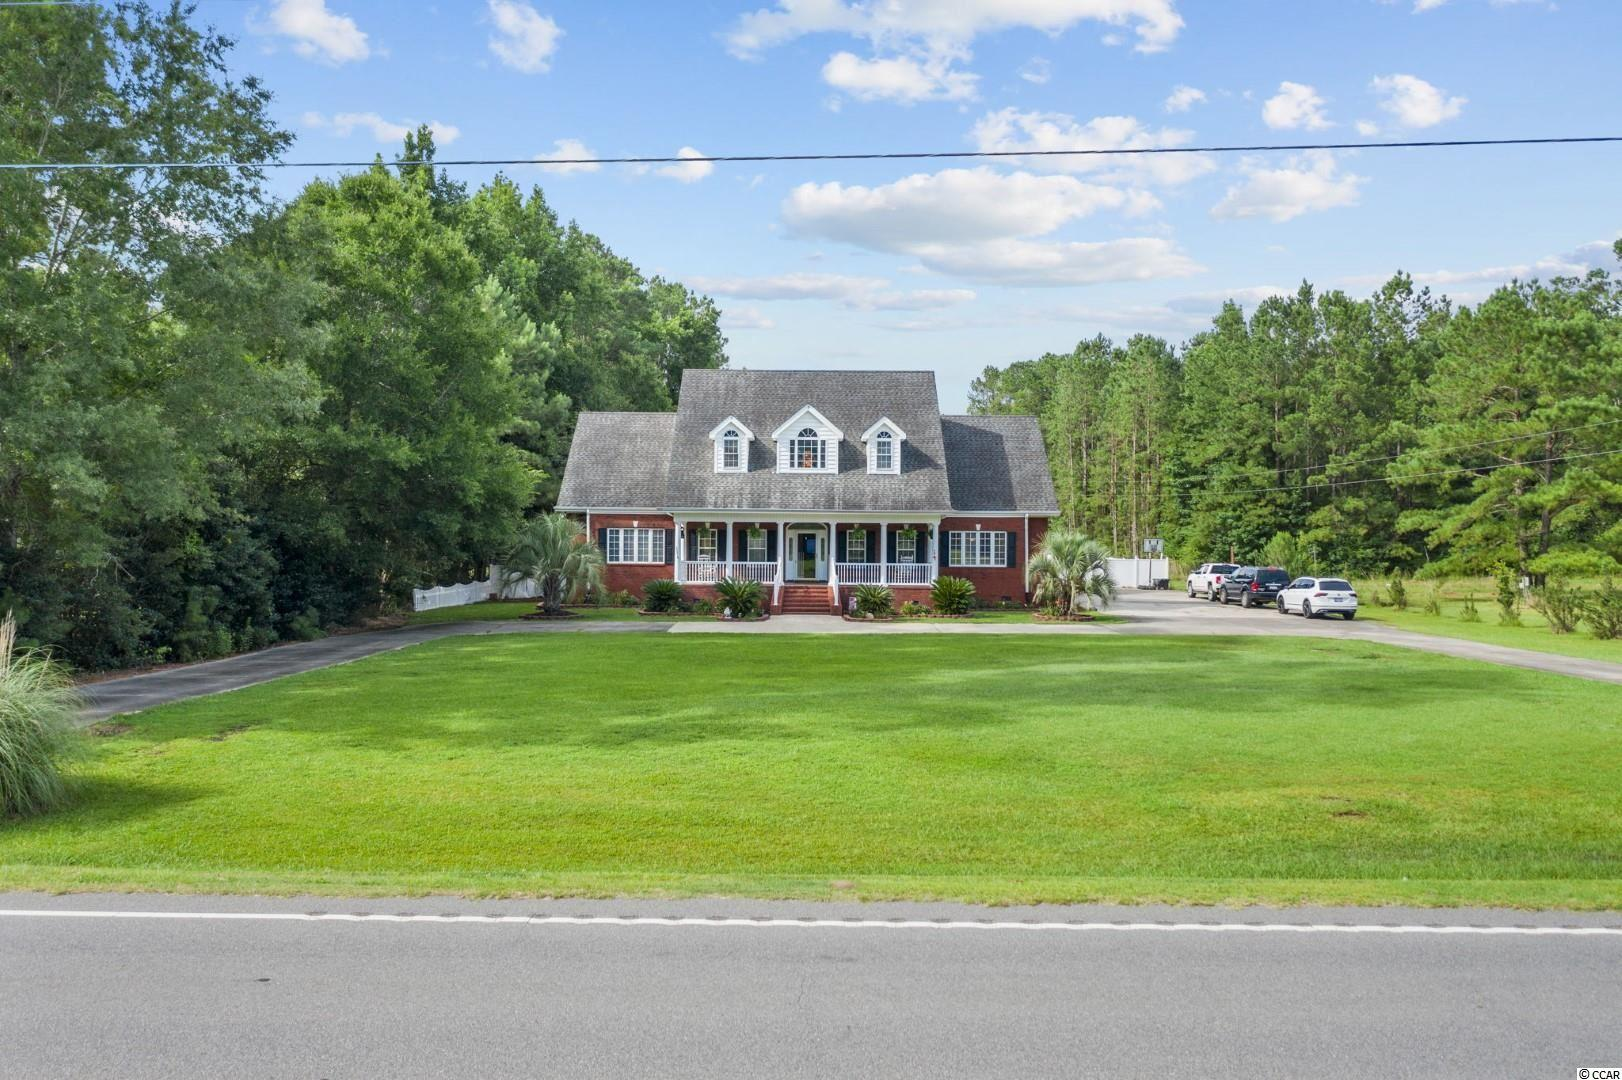 This custom all-brick home sits on 1.25 acres and is just a short drive from downtown Conway and all Myrtle Beach has to offer.  Featuring a large circle driveway and sprawling front porch, as you enter the home you are greeted by the bright foyer and beautiful hardwood floors. This leads to the massive living room with a brick fireplace. The recessed lighting draws attention to the built in entertainment and bookshelves. The eat-in kitchen has granite counters and stainless appliances, with solid cabinets and breakfast bar. The adjoining formal dining room is well appointed and comes fully furnished.   The first floor master suite has a spacious walk-in closet and huge master bath. The bath has bright lighting, tile floors, and both a soaker tub and shower.   On the first floor you'll find a second large bedroom, or huge office space, as well as a laundry room large enough for cabinetry, spare freezer, and more. As you head upstairs you'll find a split plan with 2 matching suites. Each large bedroom has a built-in desk, full bath, walk-in closet, and bonus room large enough for all of your storage needs! Currently one bedroom has an attached gym, and the other could be used as a playroom, movie room, or just temperature controlled storage. There's also a pull down set of stairs to access the floored attic.   As you pass through the breezeway the oversized garage has 10ft commercial doors. It's ideal for large vehicles or a boat, and with enough space left over for a workshop and additional storage. Above the garage is a huge bonus room that could easily be tied into the main upstairs hvac system. This space is great for relaxing or entertaining, and the slate pool table conveys.   Behind the home you have a massive deck and pool, perfect for relaxing while overlooking the fenced yard. With a spacious layout and custom features, and just a short drive to historic downtown Conway, you'll want to put this home at the top of your list!  Square footage is approximate an